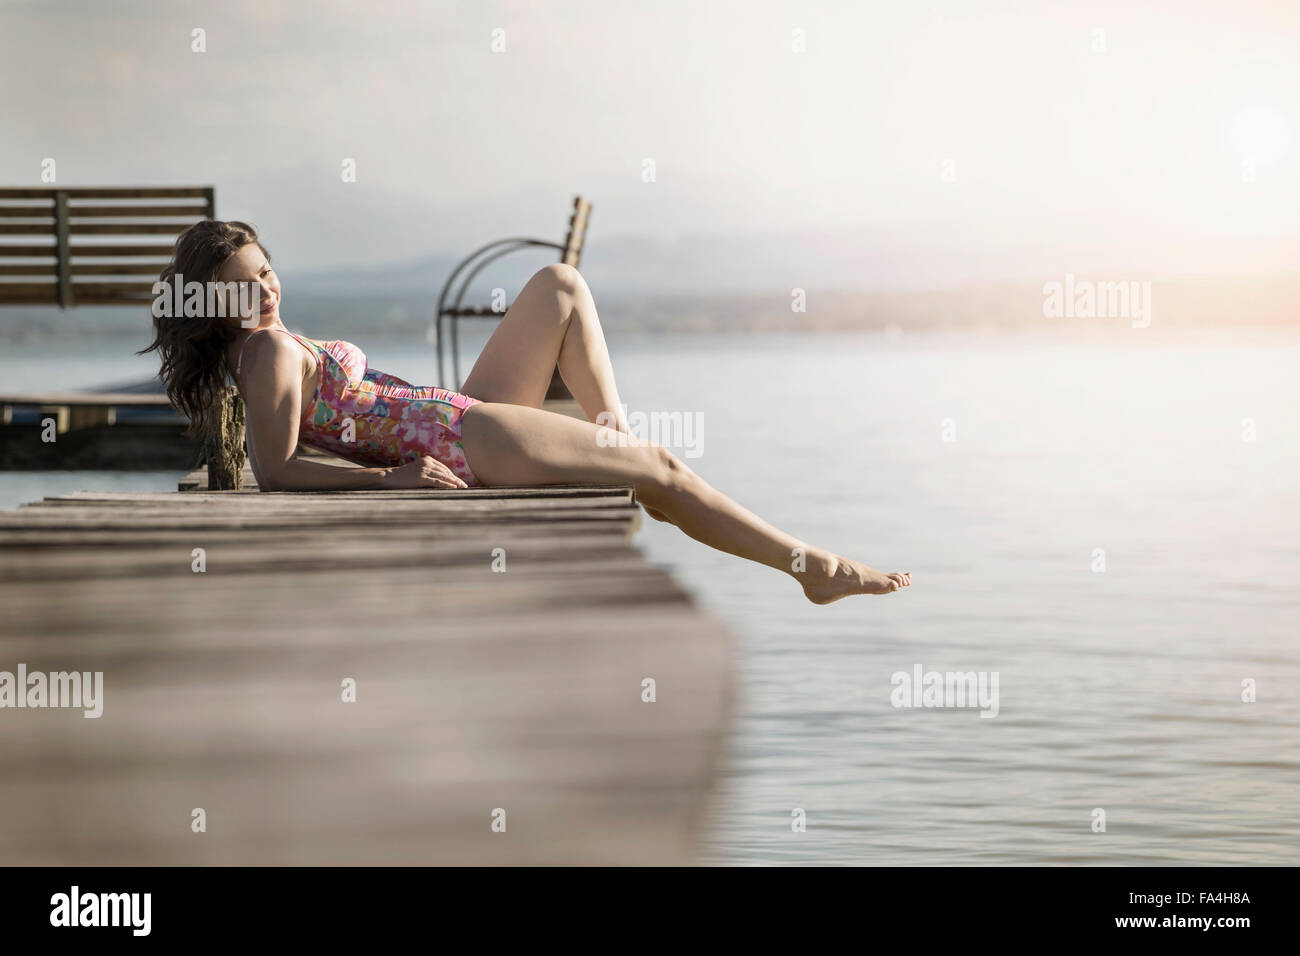 Mature woman lying in swimsuit on pier, Bavaria, Germany - Stock Image